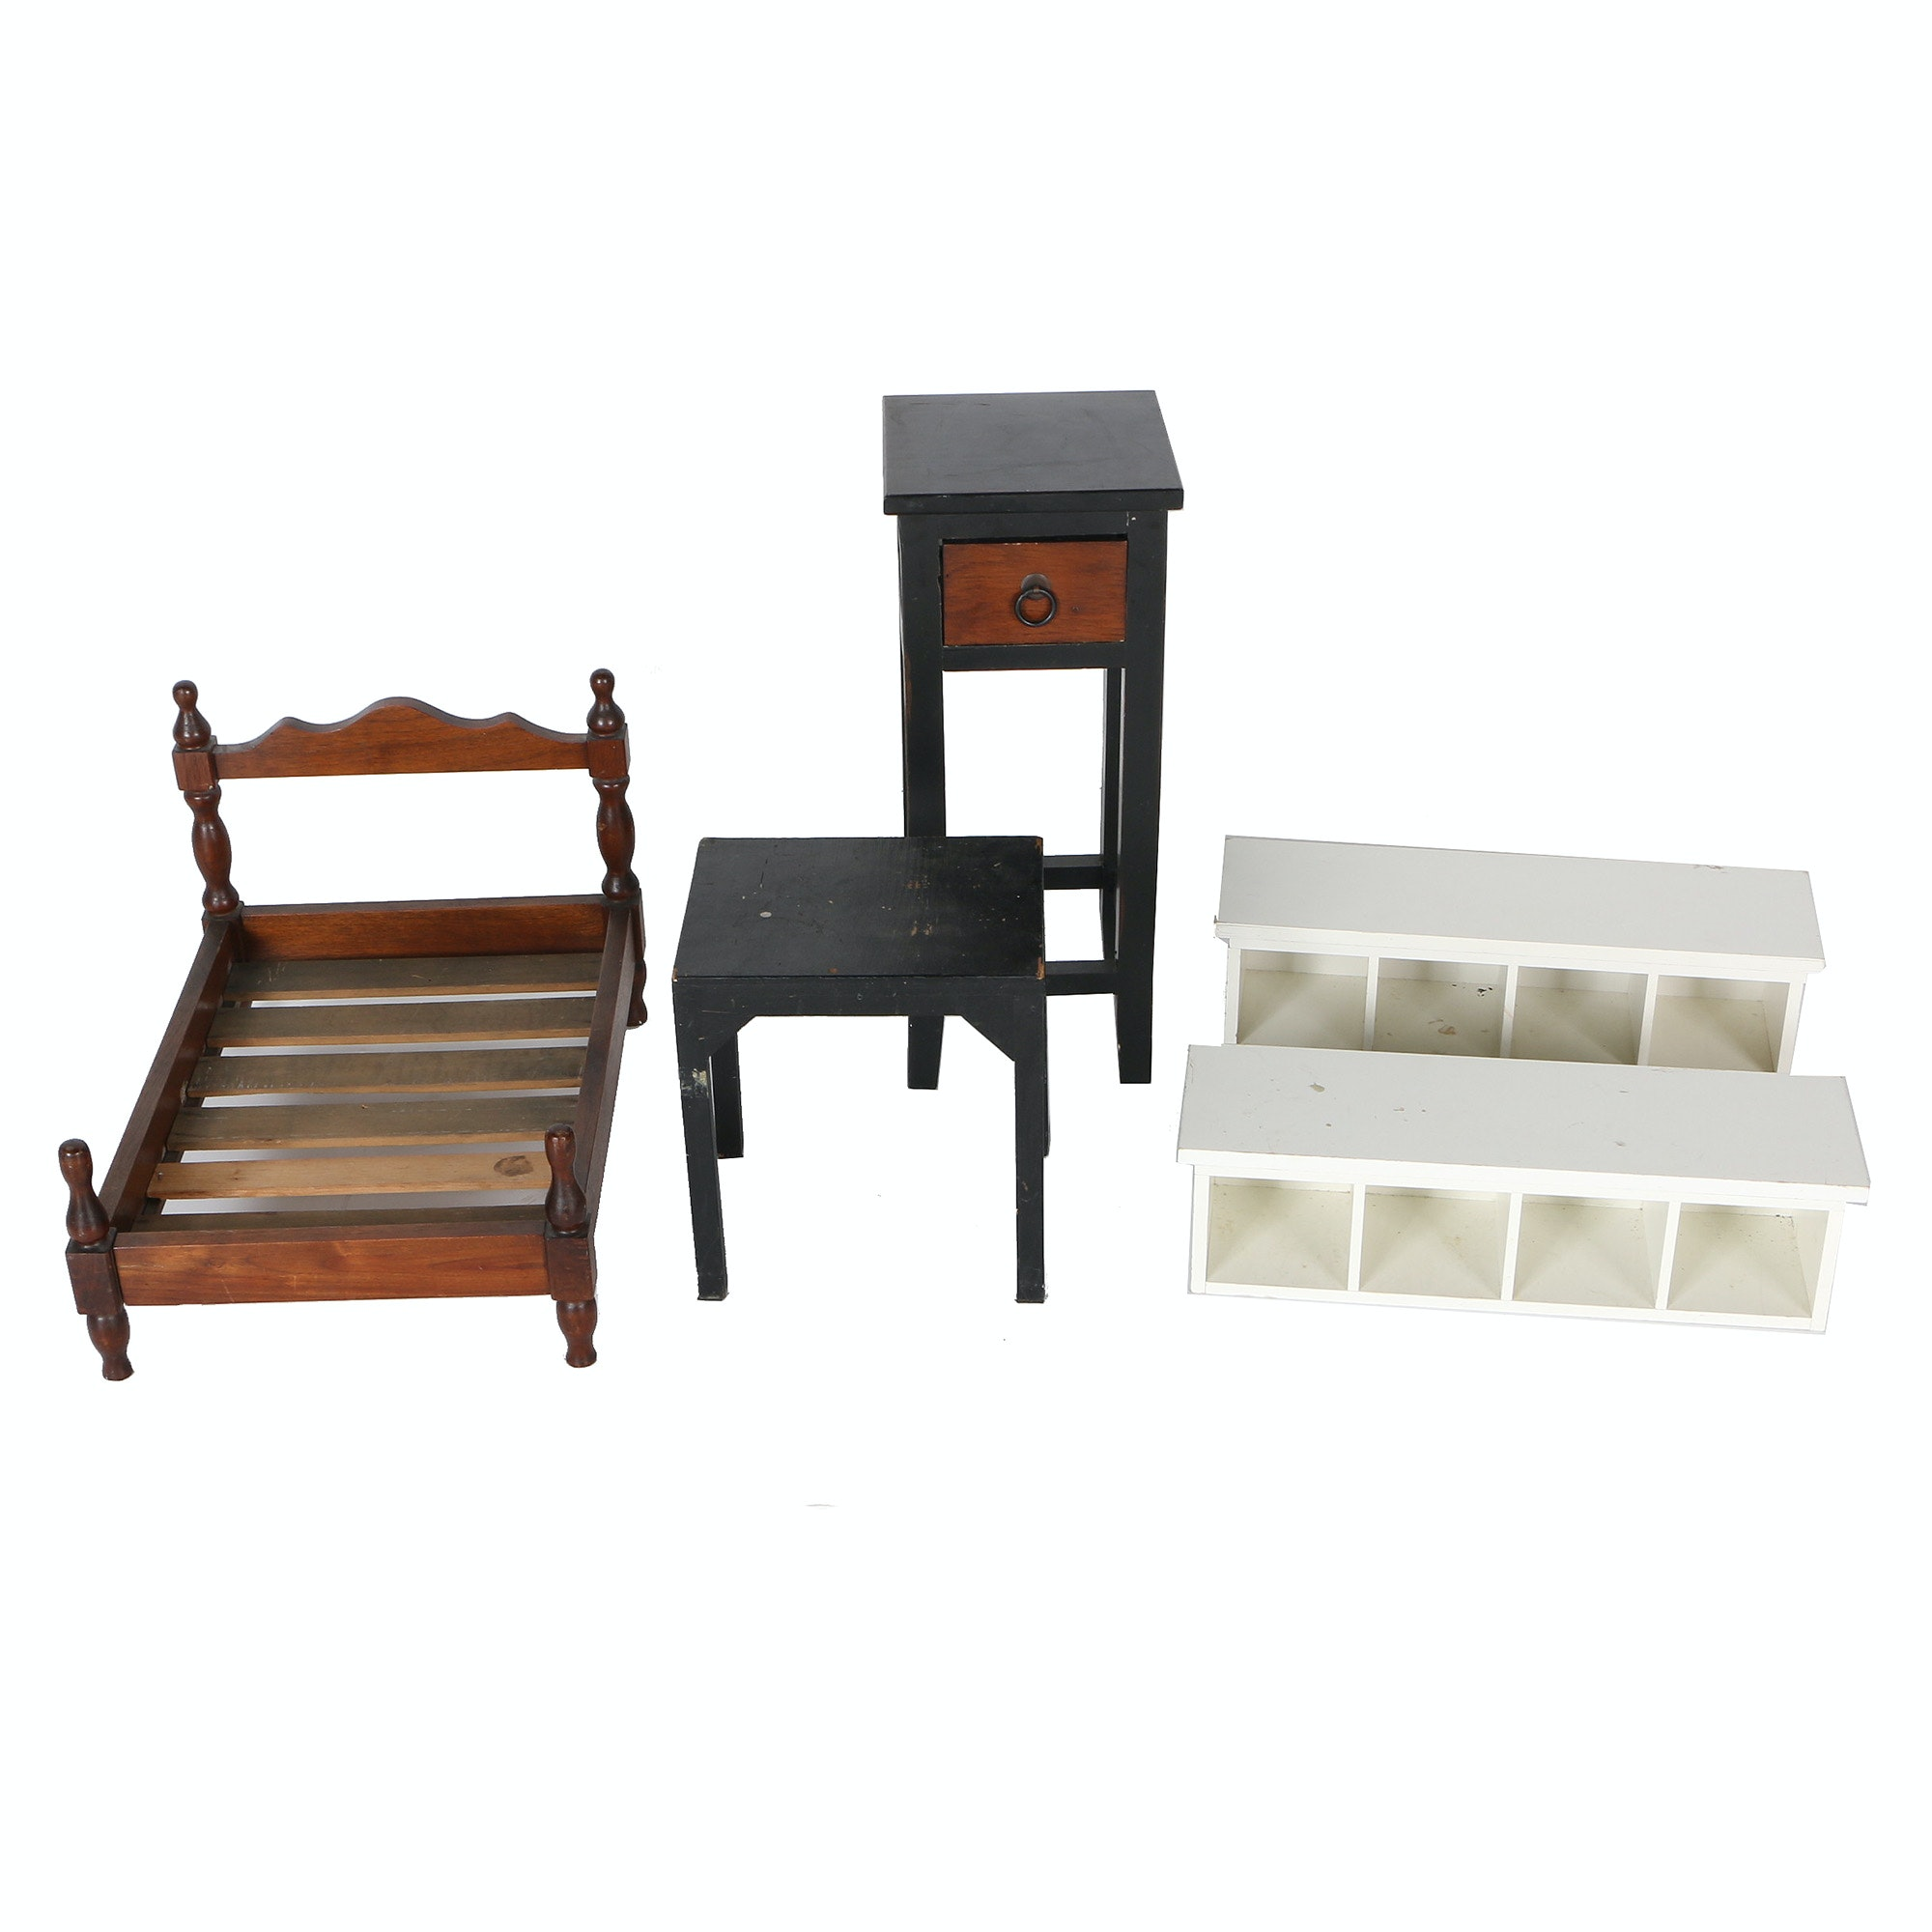 Miniature Furniture Including Mahogany Bed Frame